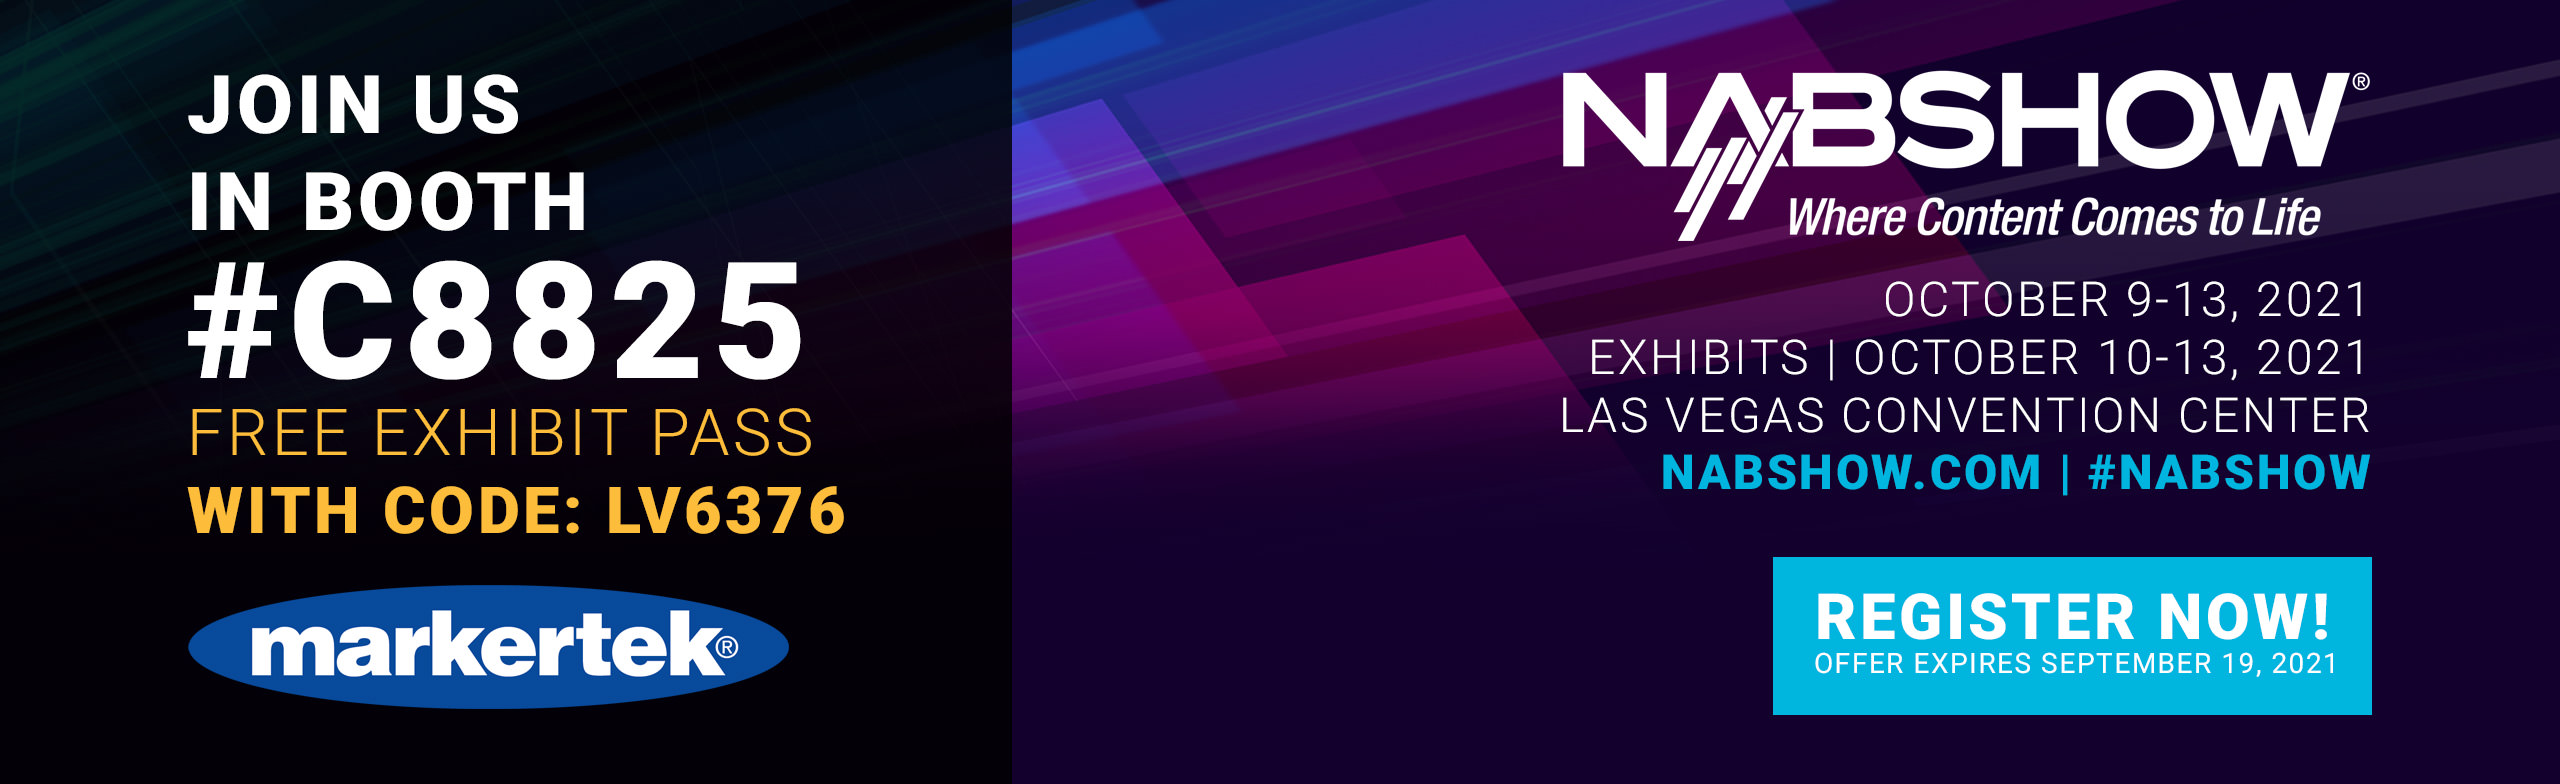 join markertek and get a free pass to nab 2021